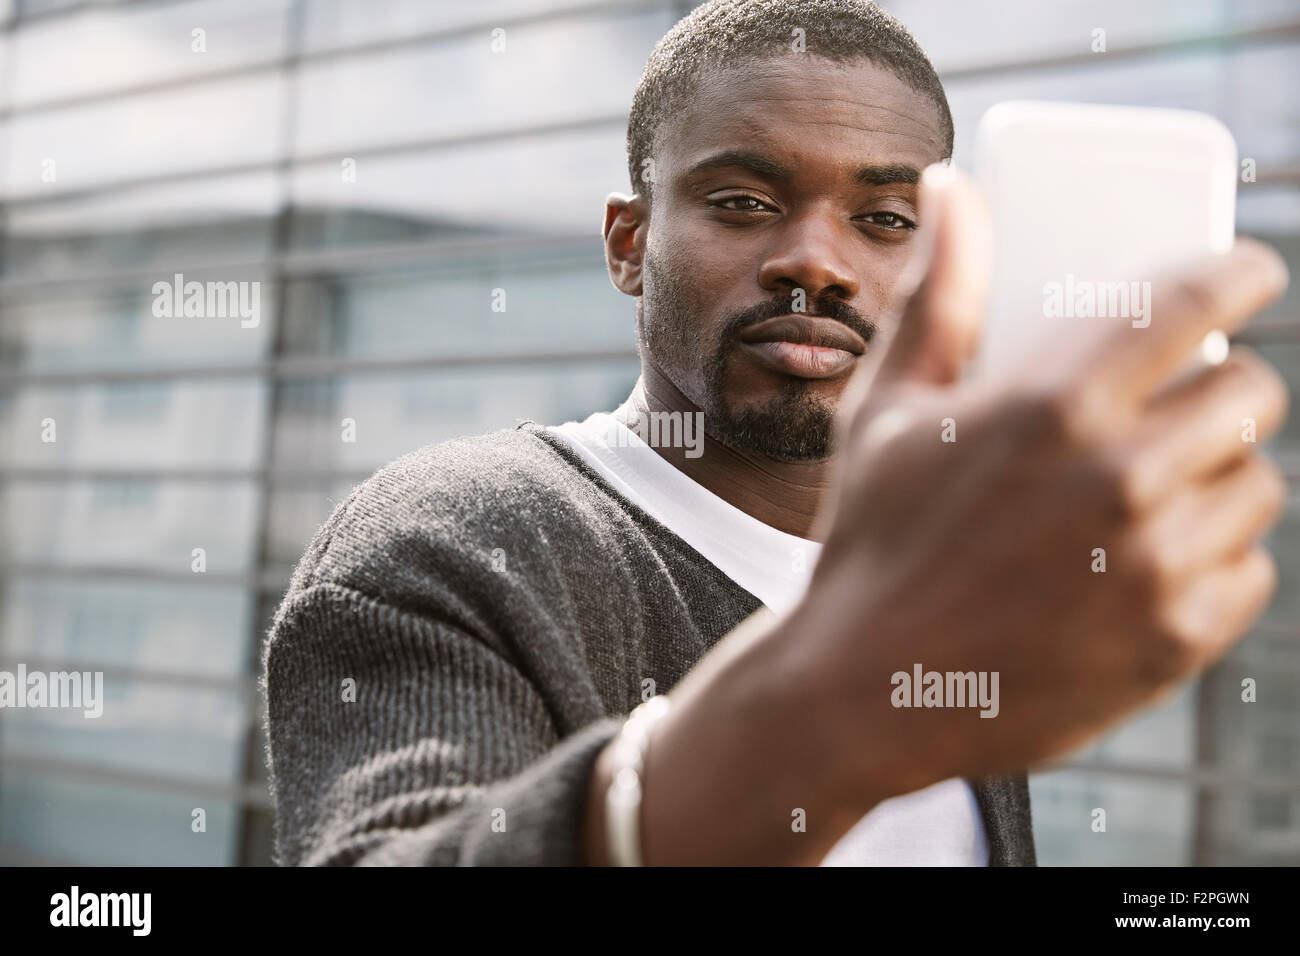 Young man taking a selfie outdoors - Stock Image